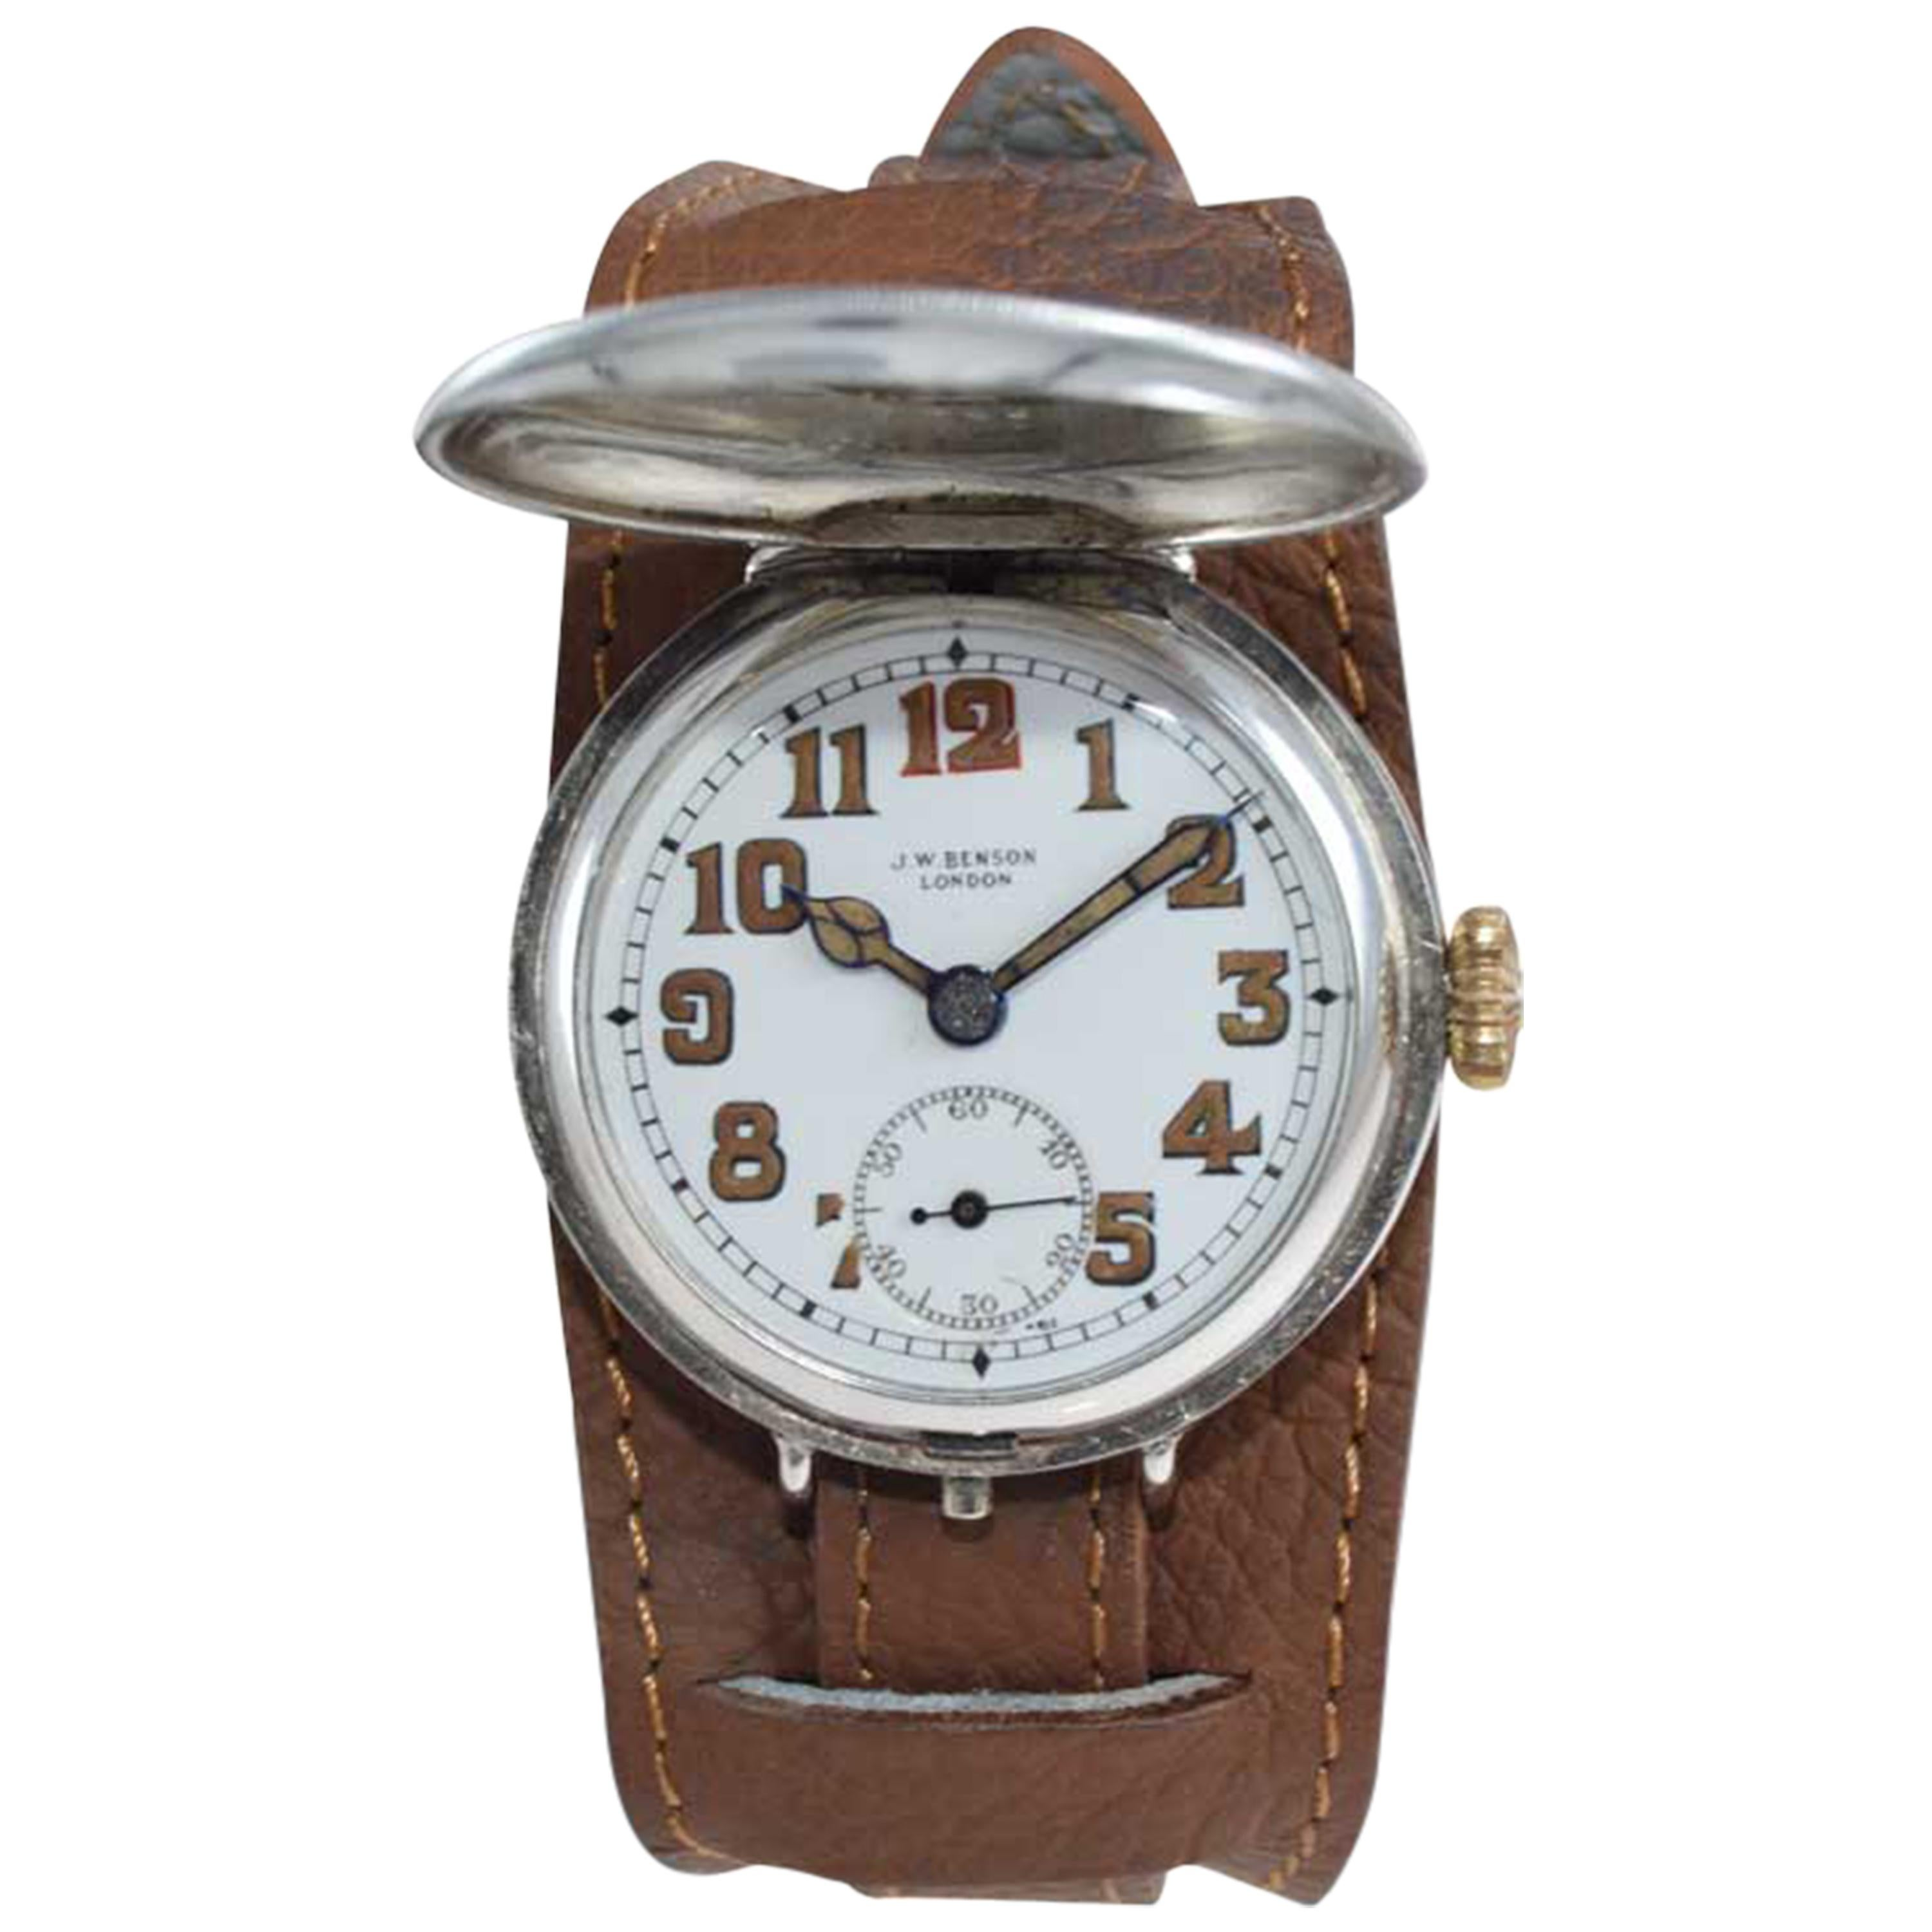 J.W. Benson Silver Campaign Style Hunters Case Watch with Original Dial